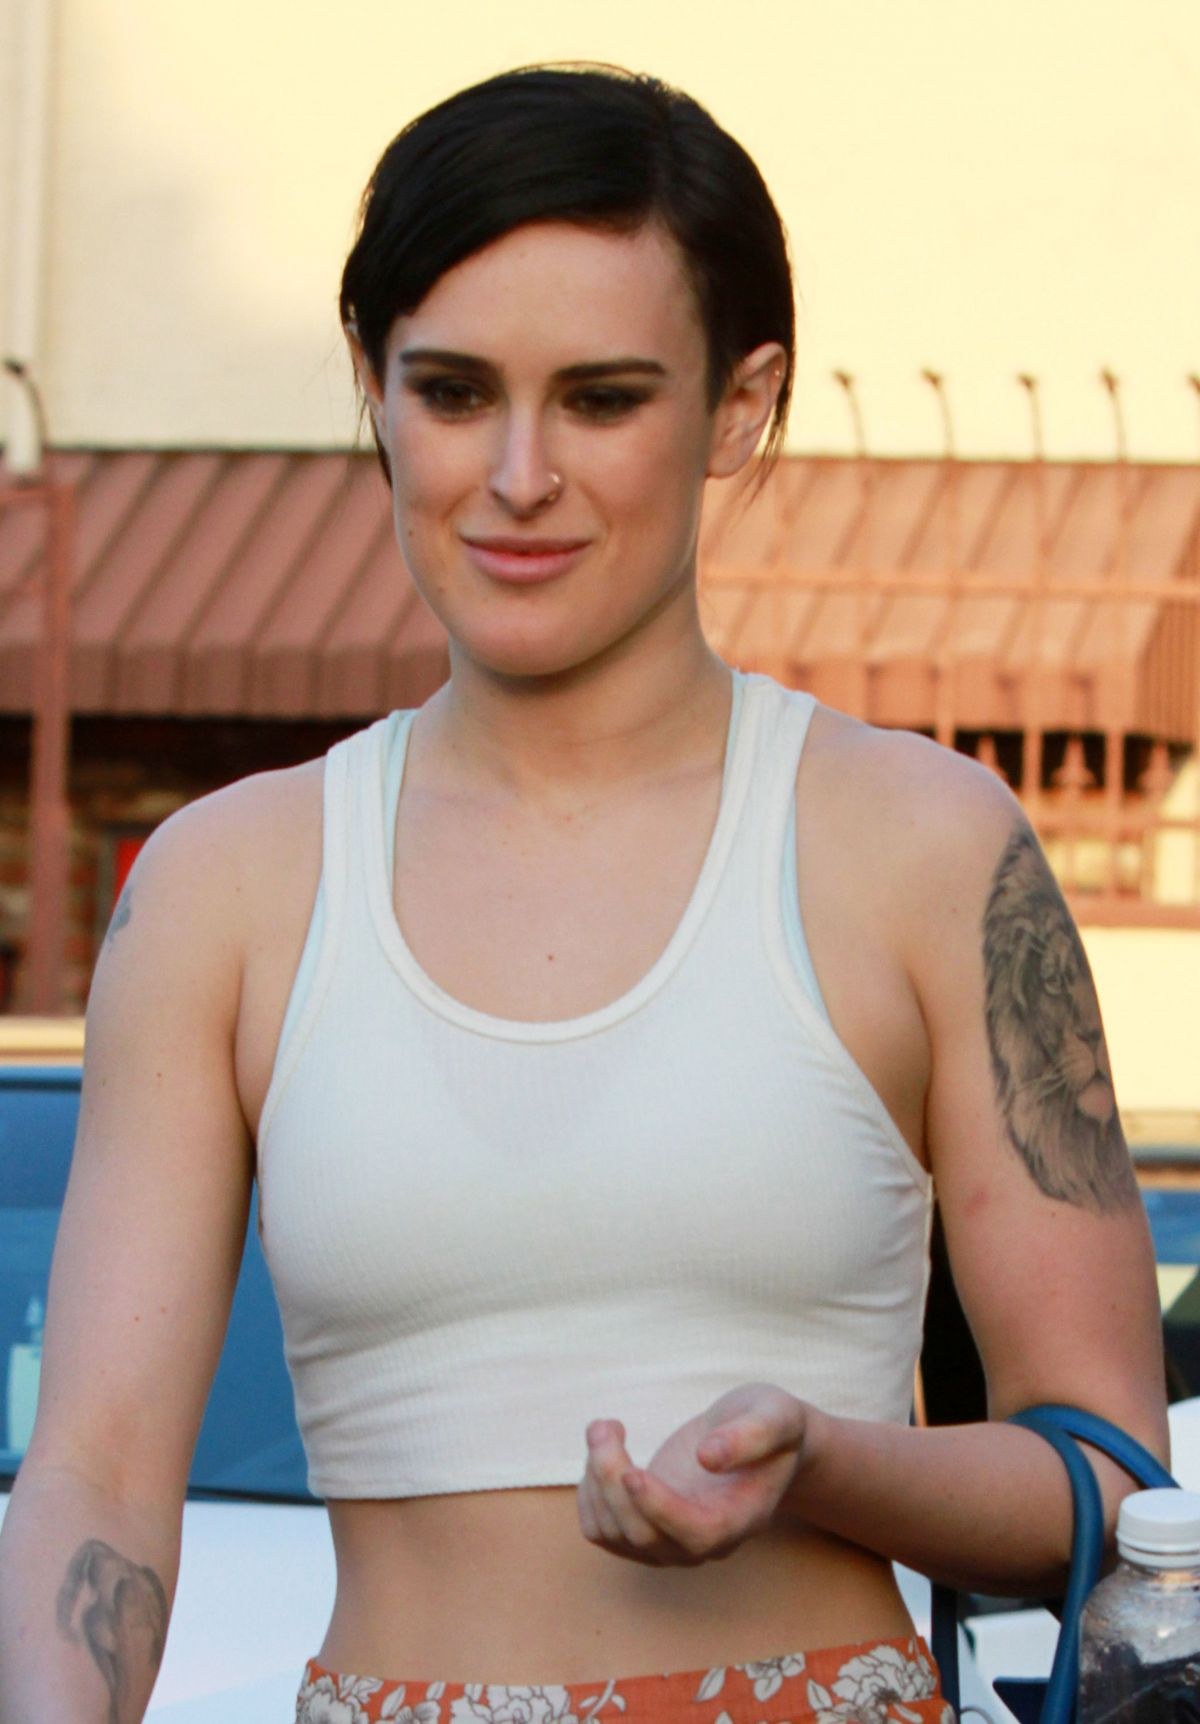 Rumer Willis At Dancing with Rumer Willis Poodle Urban Dictionary